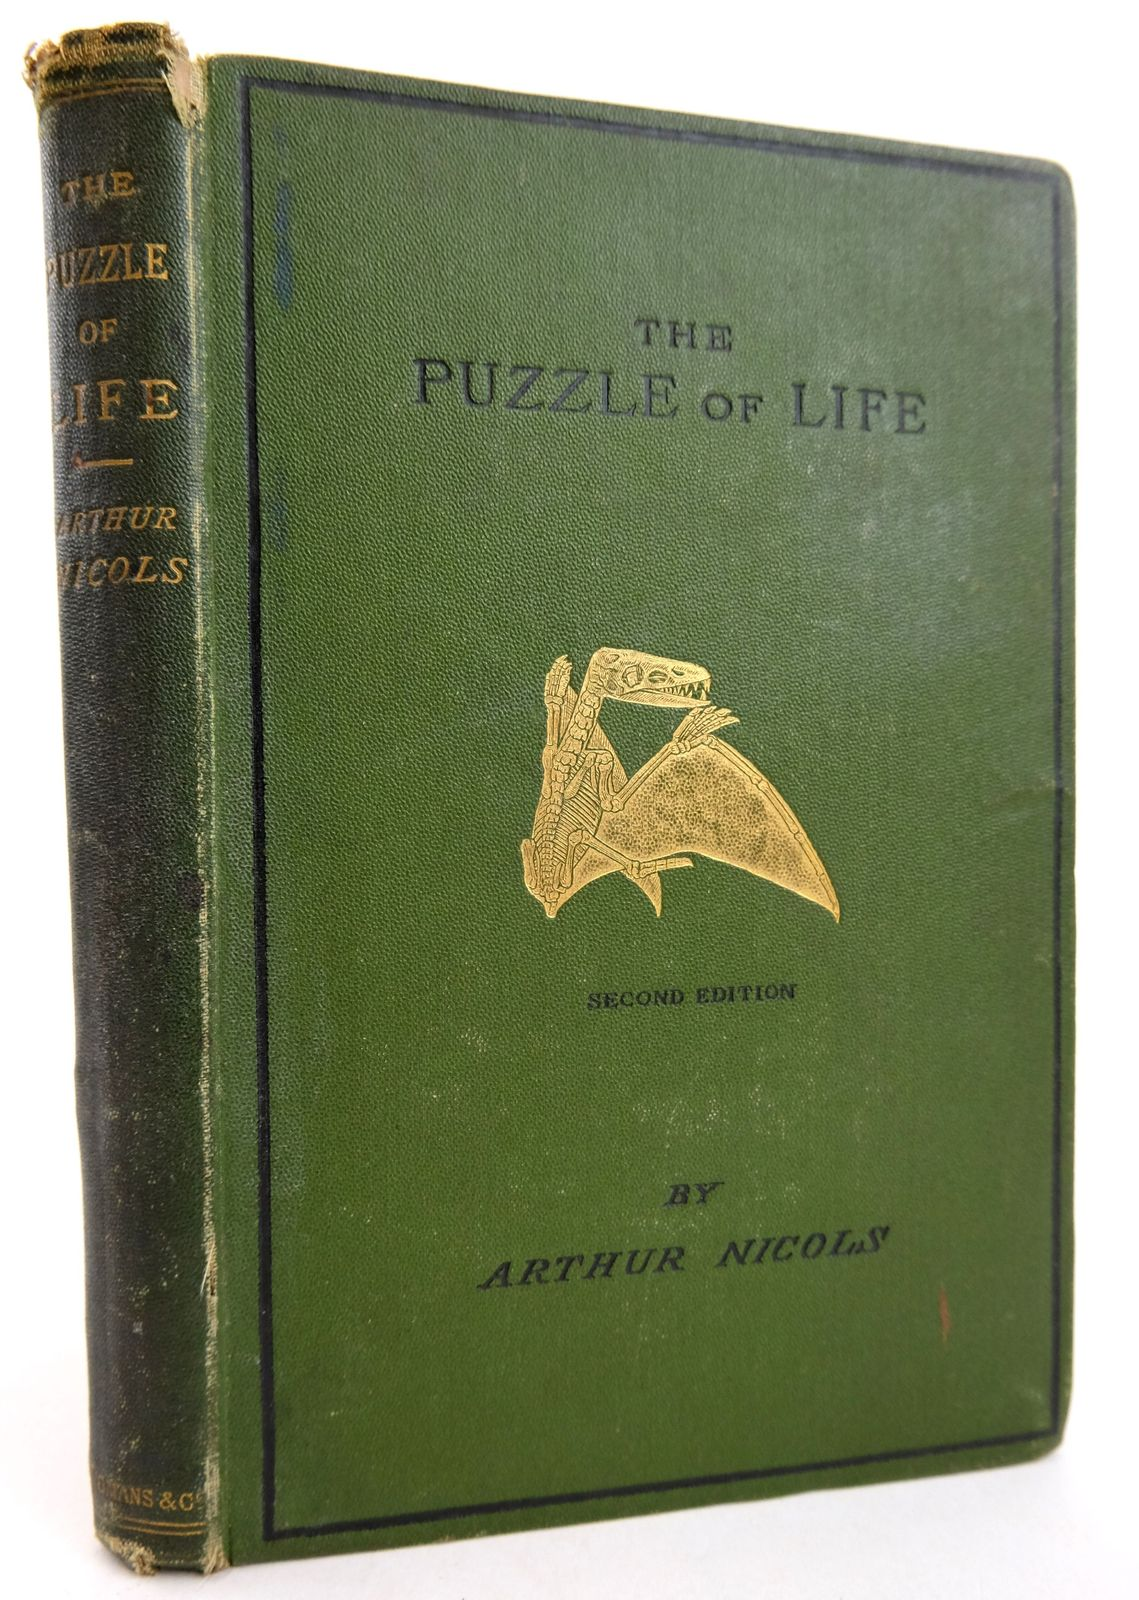 Photo of THE PUZZLE OF LIFE; AND HOW IT HAS BEEN PUT TOGETHER written by Nicols, Arthur published by Longmans, Green & Co. (STOCK CODE: 1819467)  for sale by Stella & Rose's Books